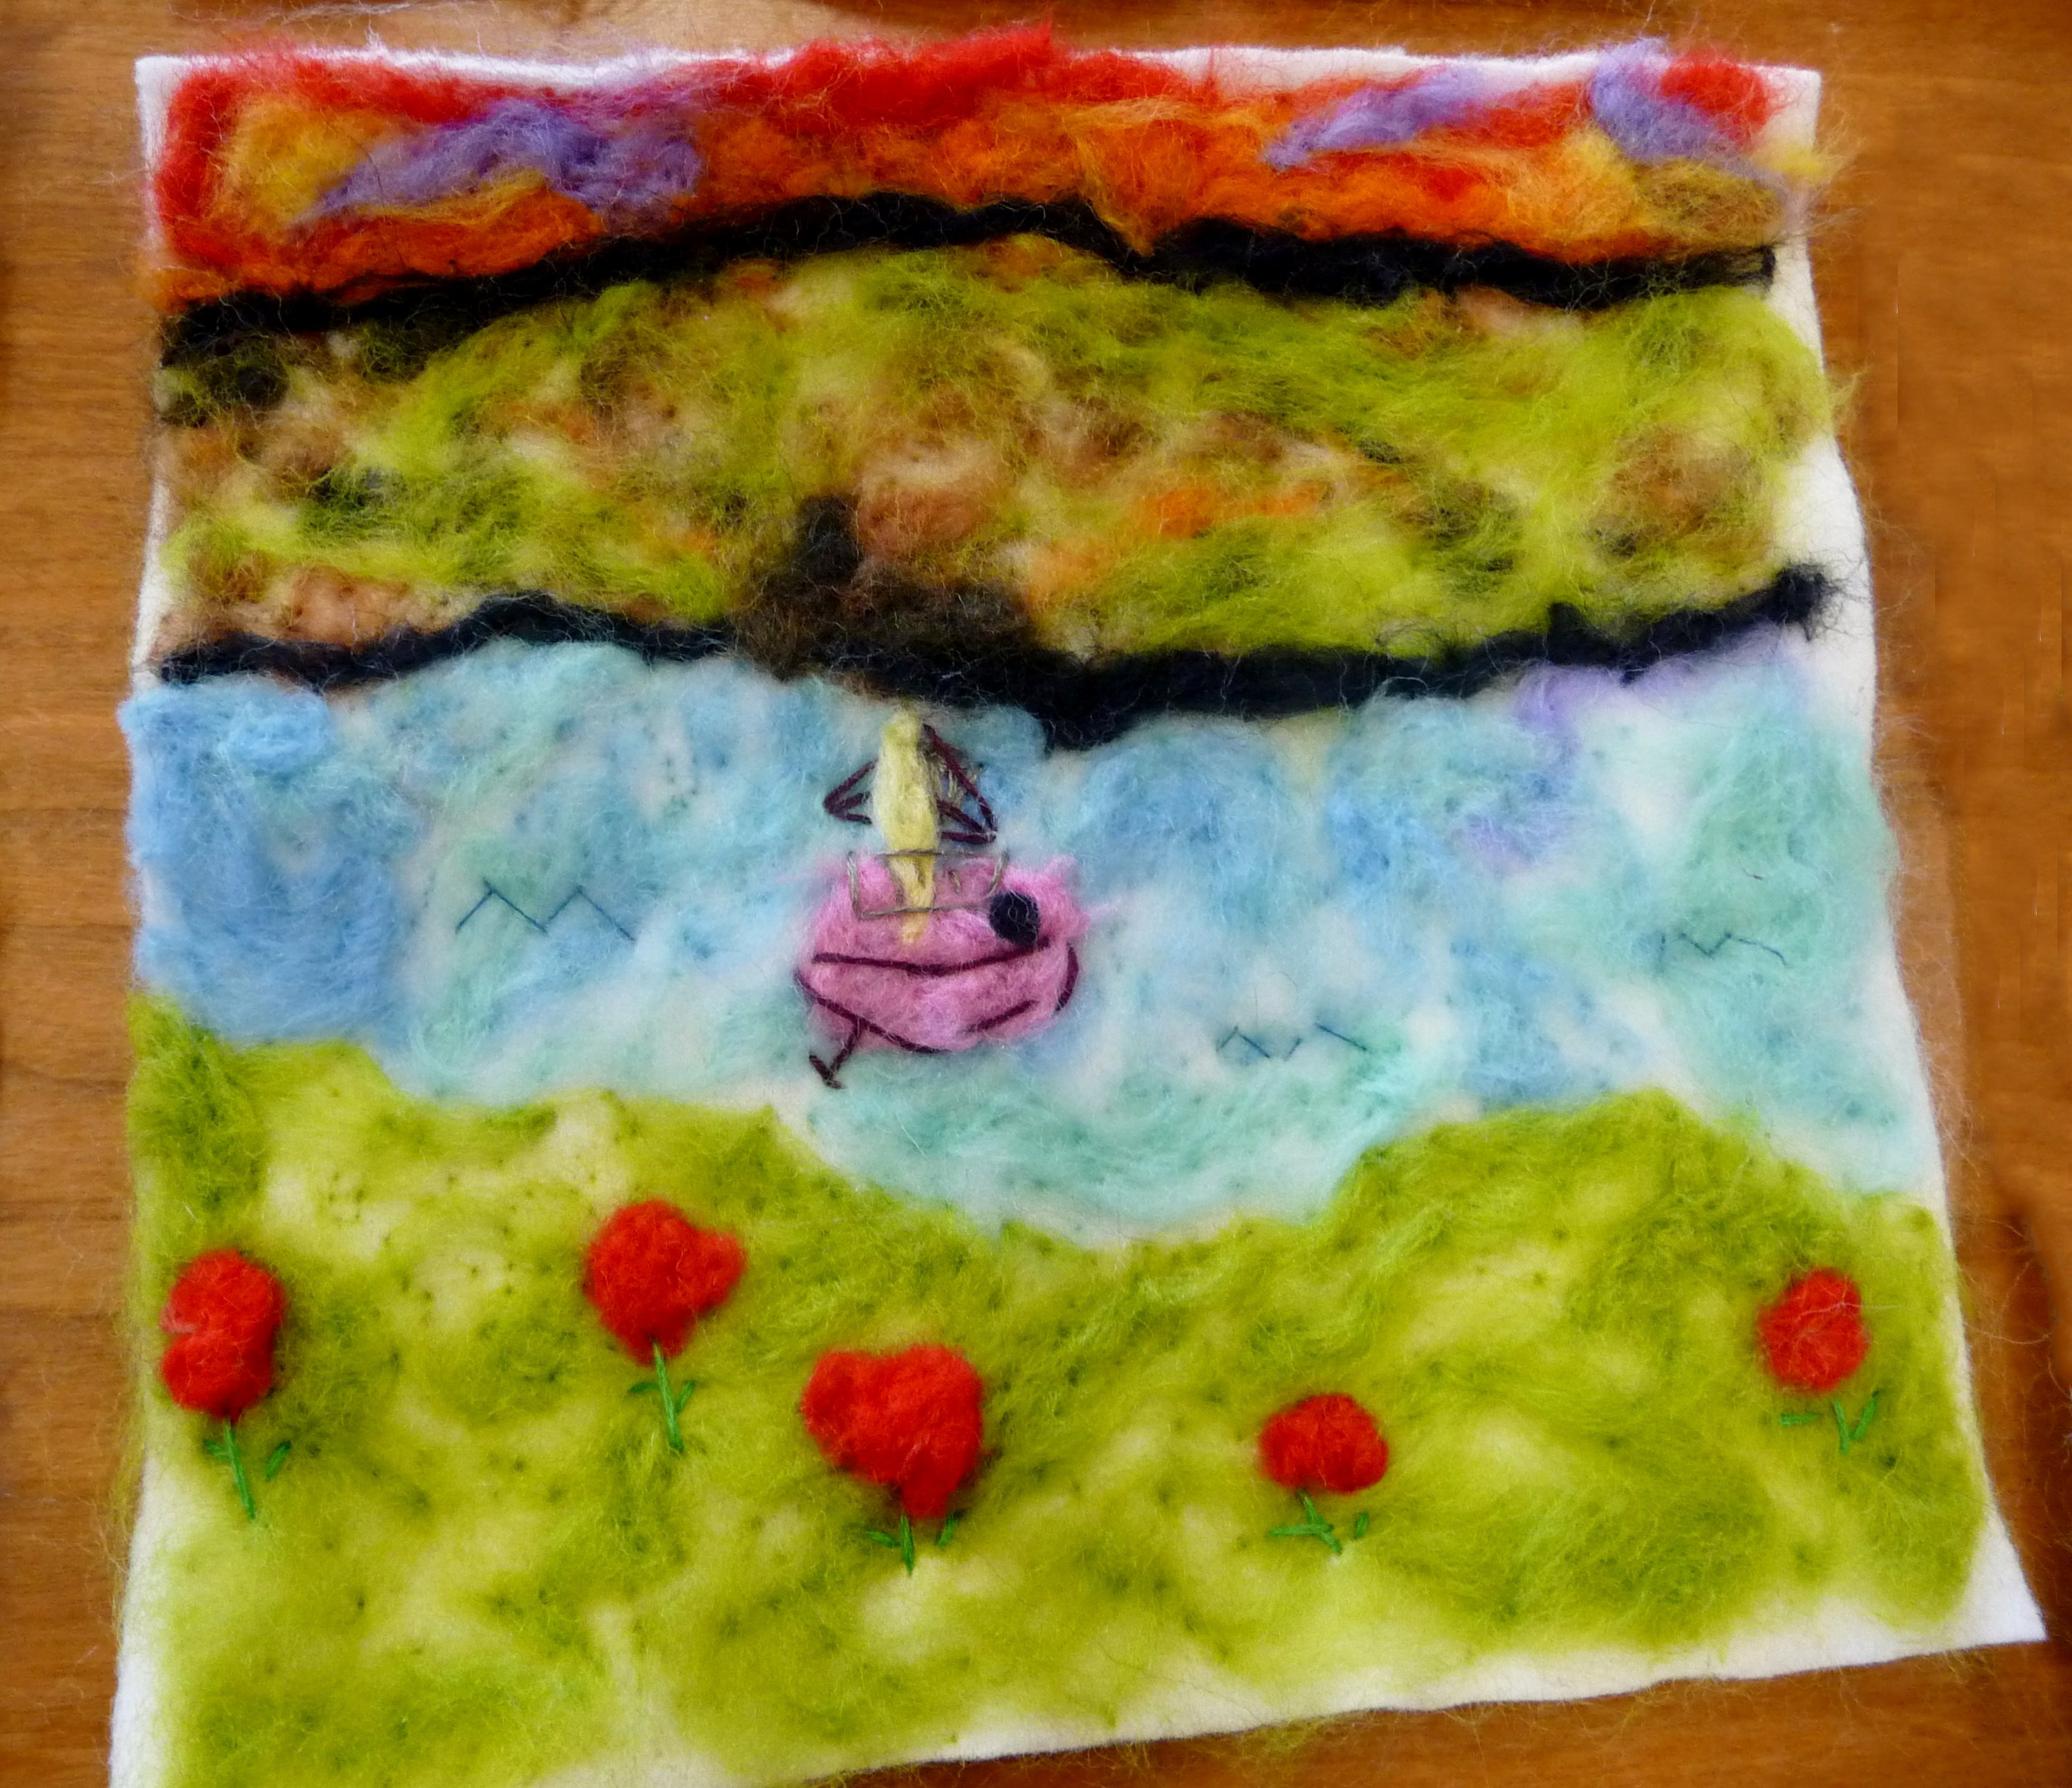 YE group May 2015. This is Emma Lewis's completed needlefelted landscape